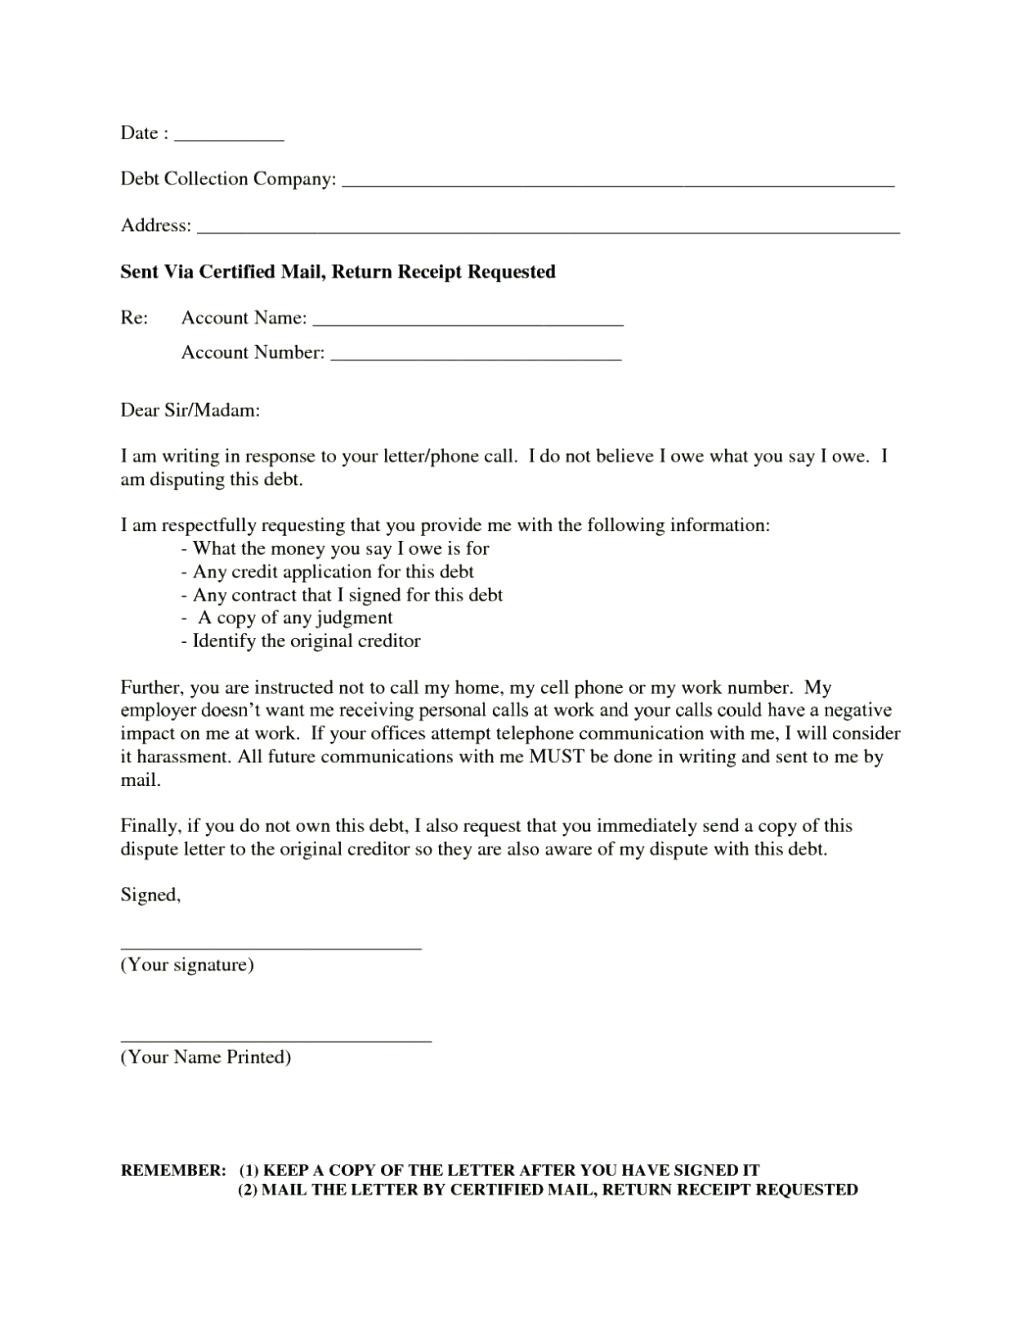 debt harassment template letter example-Sample debt collection dispute letter report template example good sample debt collection dispute letter report template 10-i